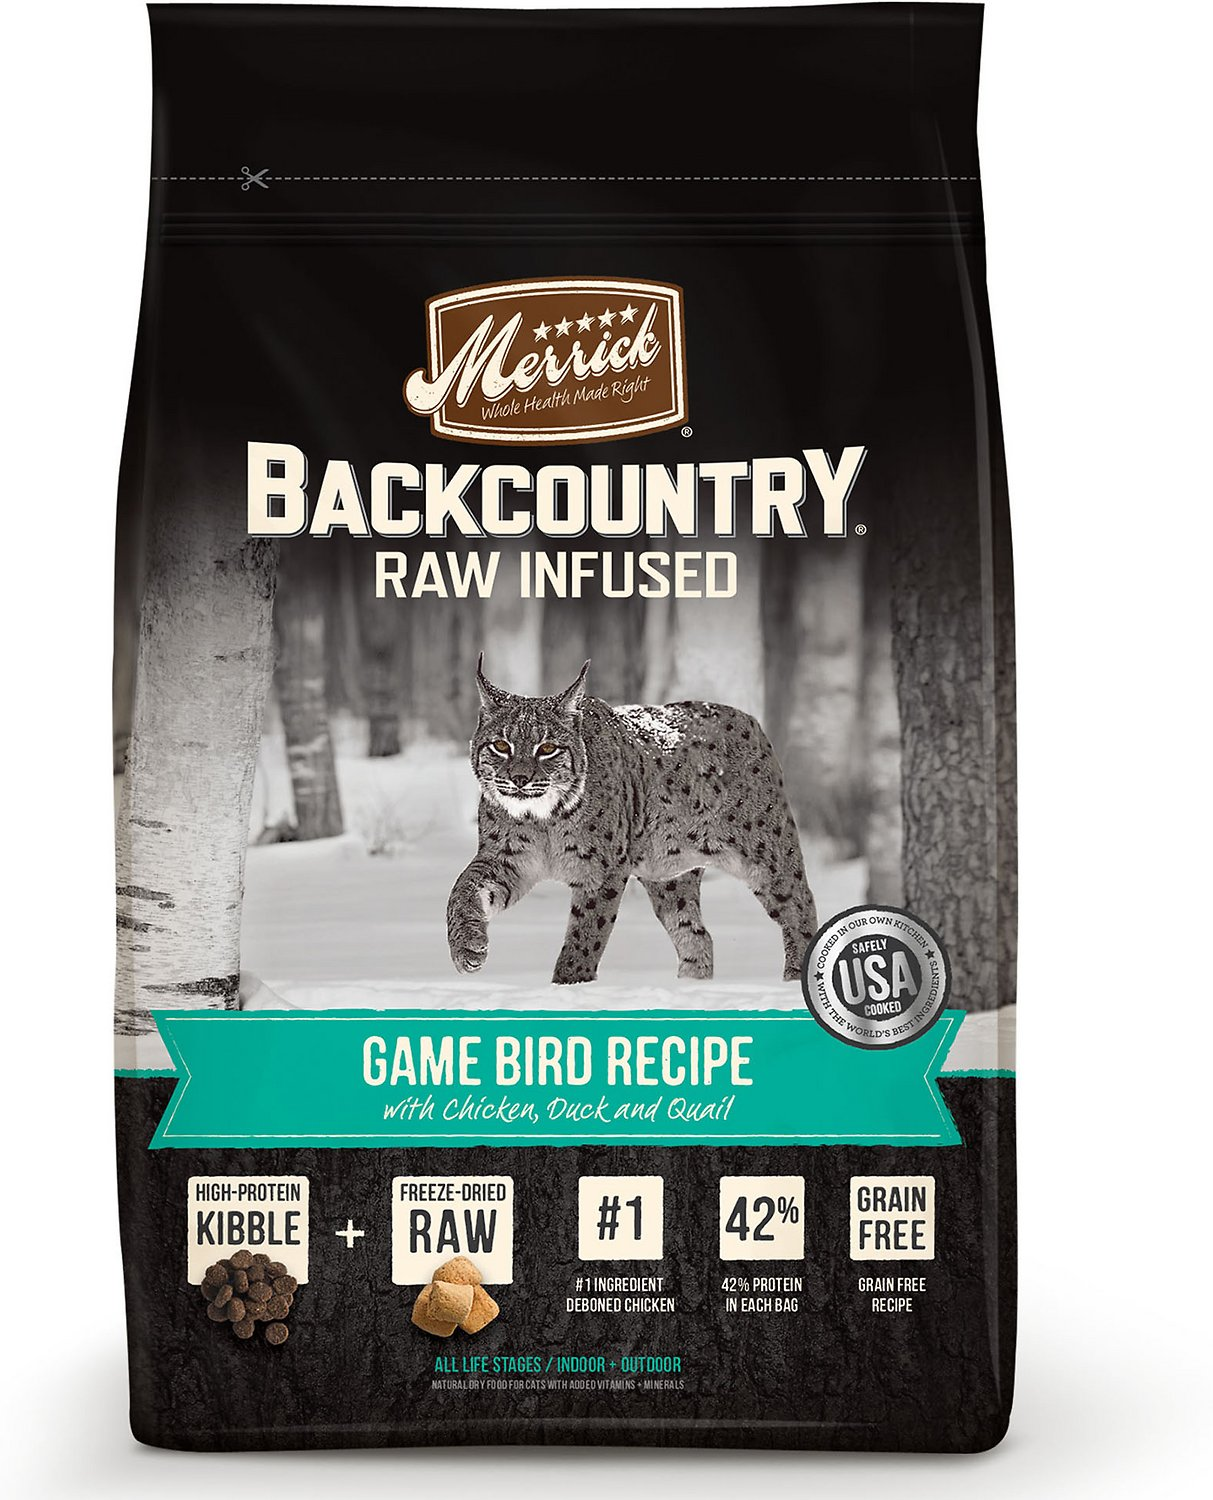 Merrick Backcountry Raw Infused Game Bird Recipe with Chicken, Duck & Quail Grain-Free Dry Cat Food Image